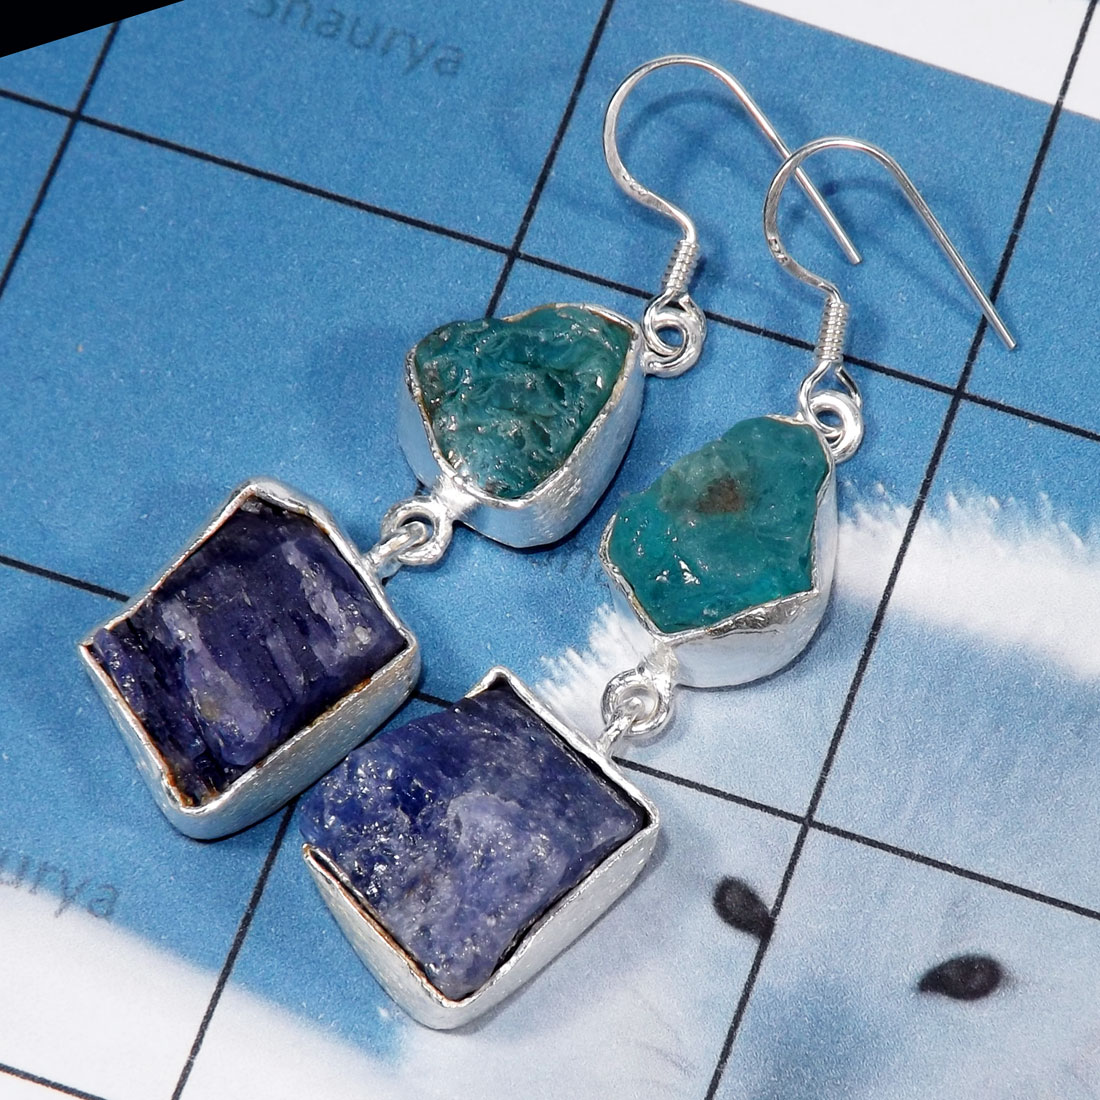 Tanzanite, Apatite Rough B - RGE978-Tanzanite & Apatite Rough Stone Matte Finish 925 Silver E